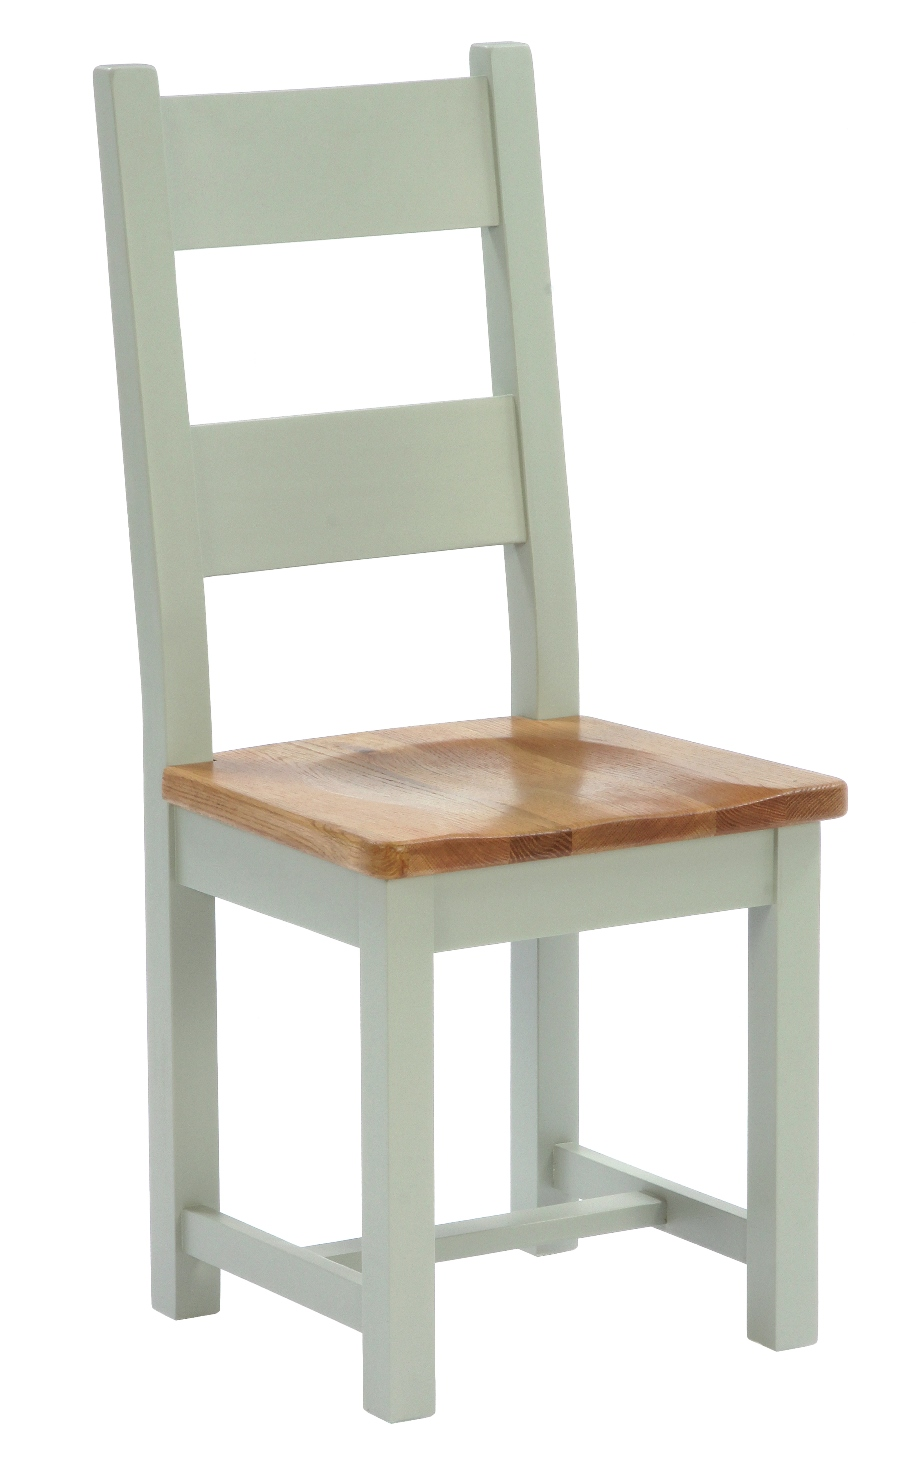 Dining Chair Colour-French Grey w 47 x d 50 x h 108 cm € 160 Product Code: ANB004